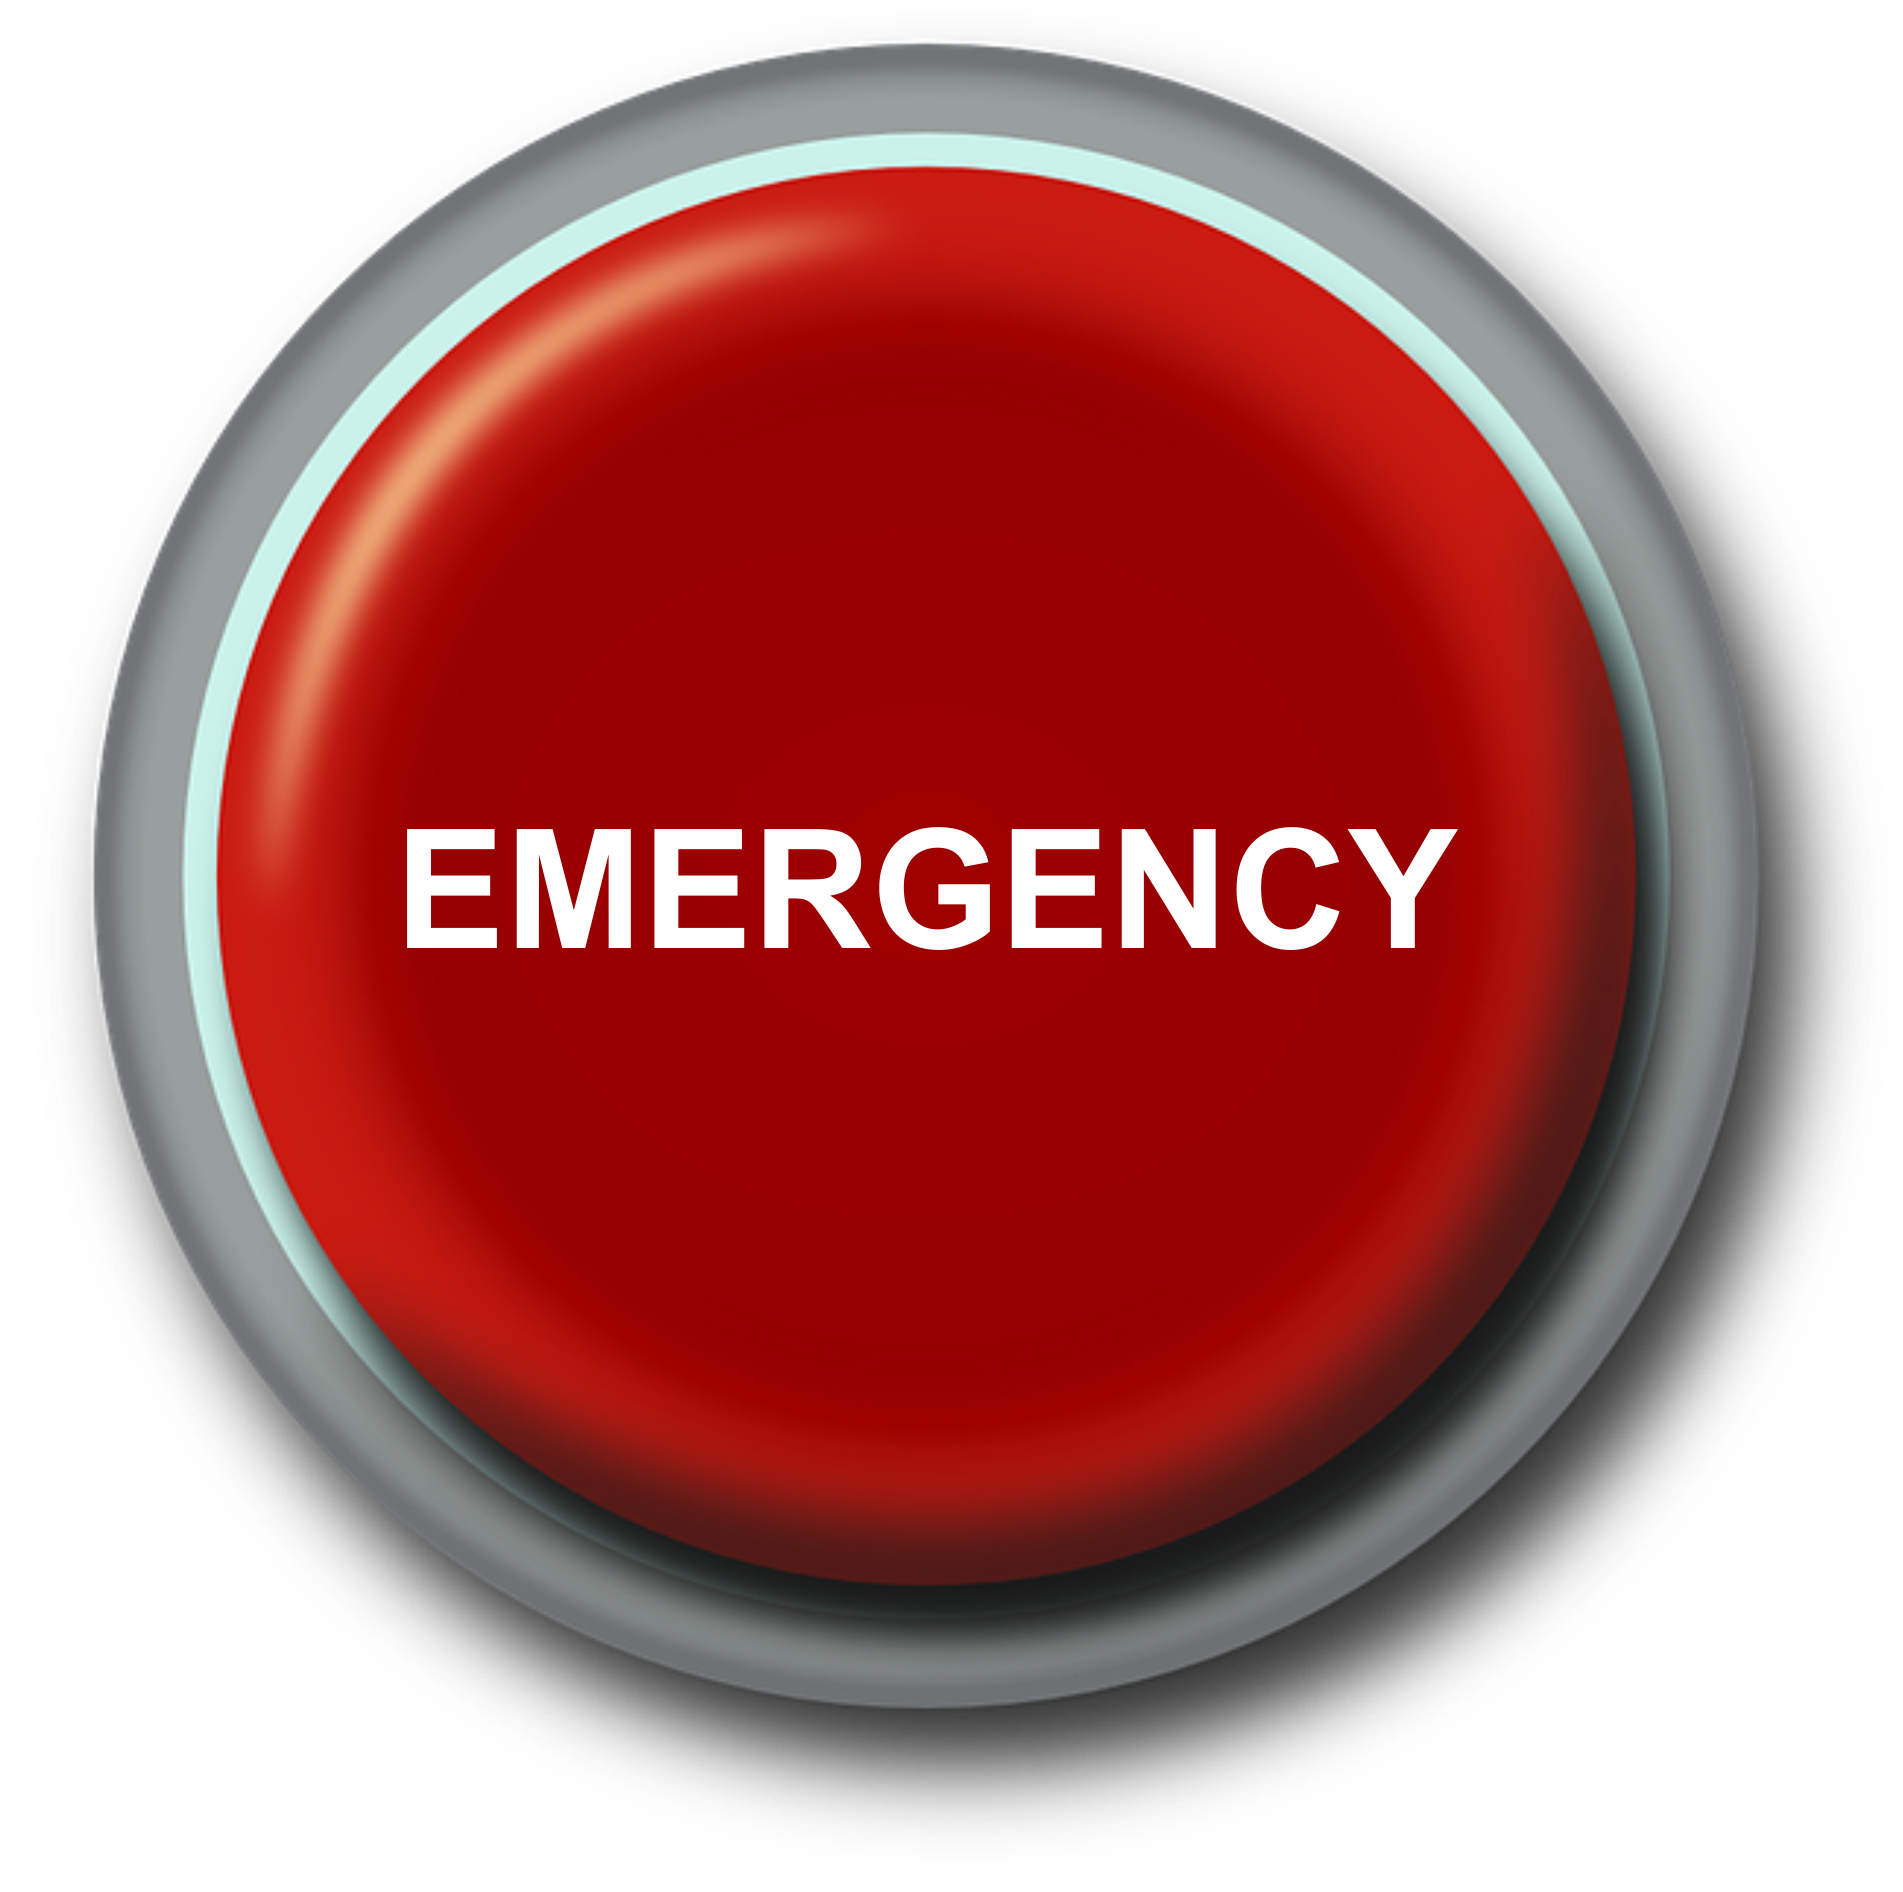 image of a panic button with emergency written on it